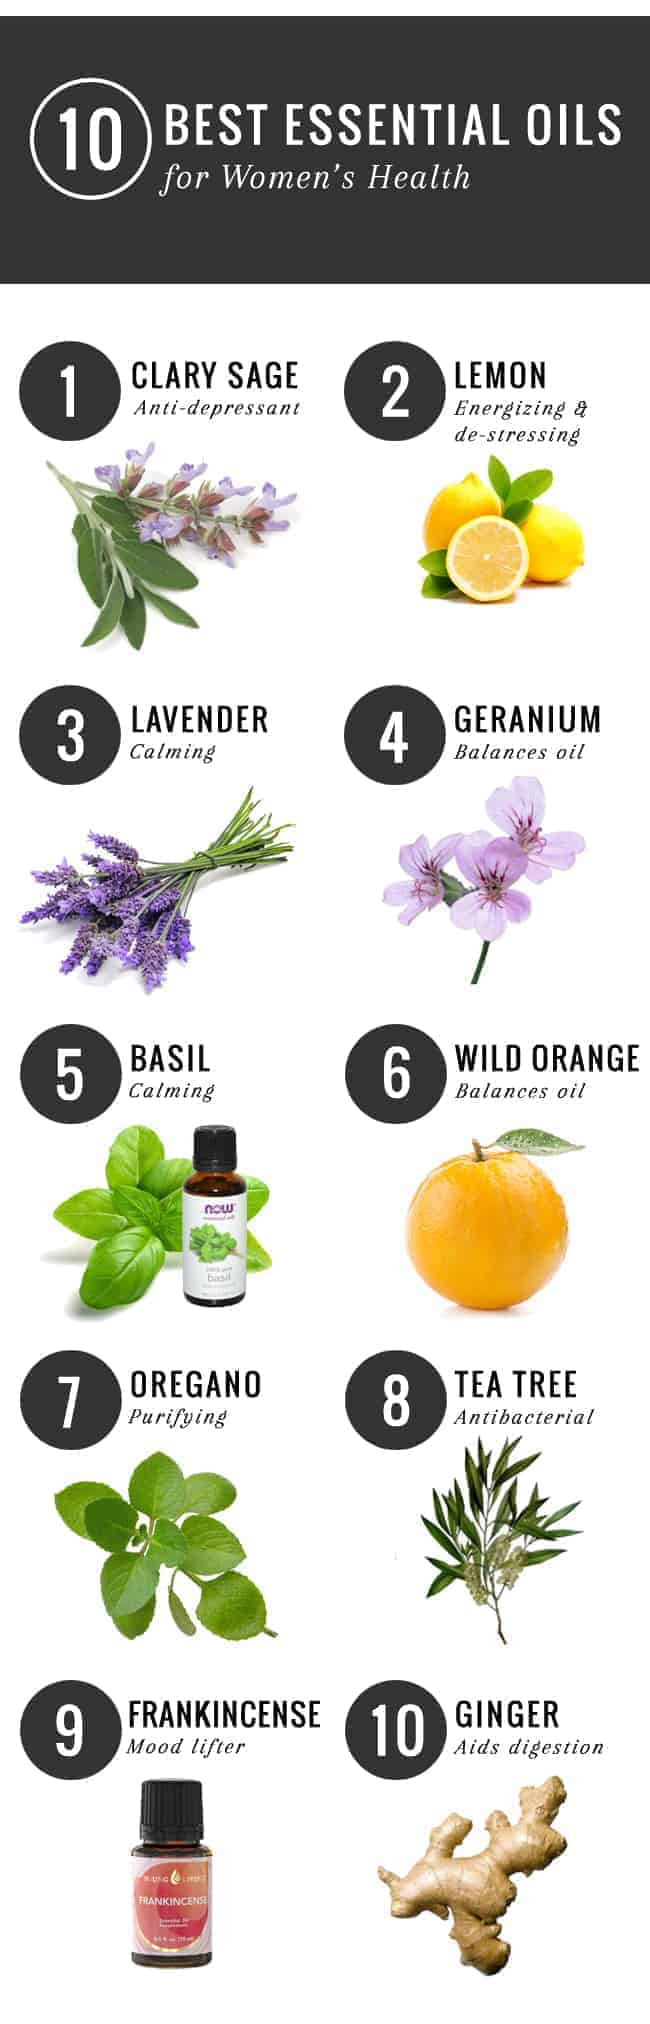 10 Best Essential Oils for Women's Health | HelloGlow.co